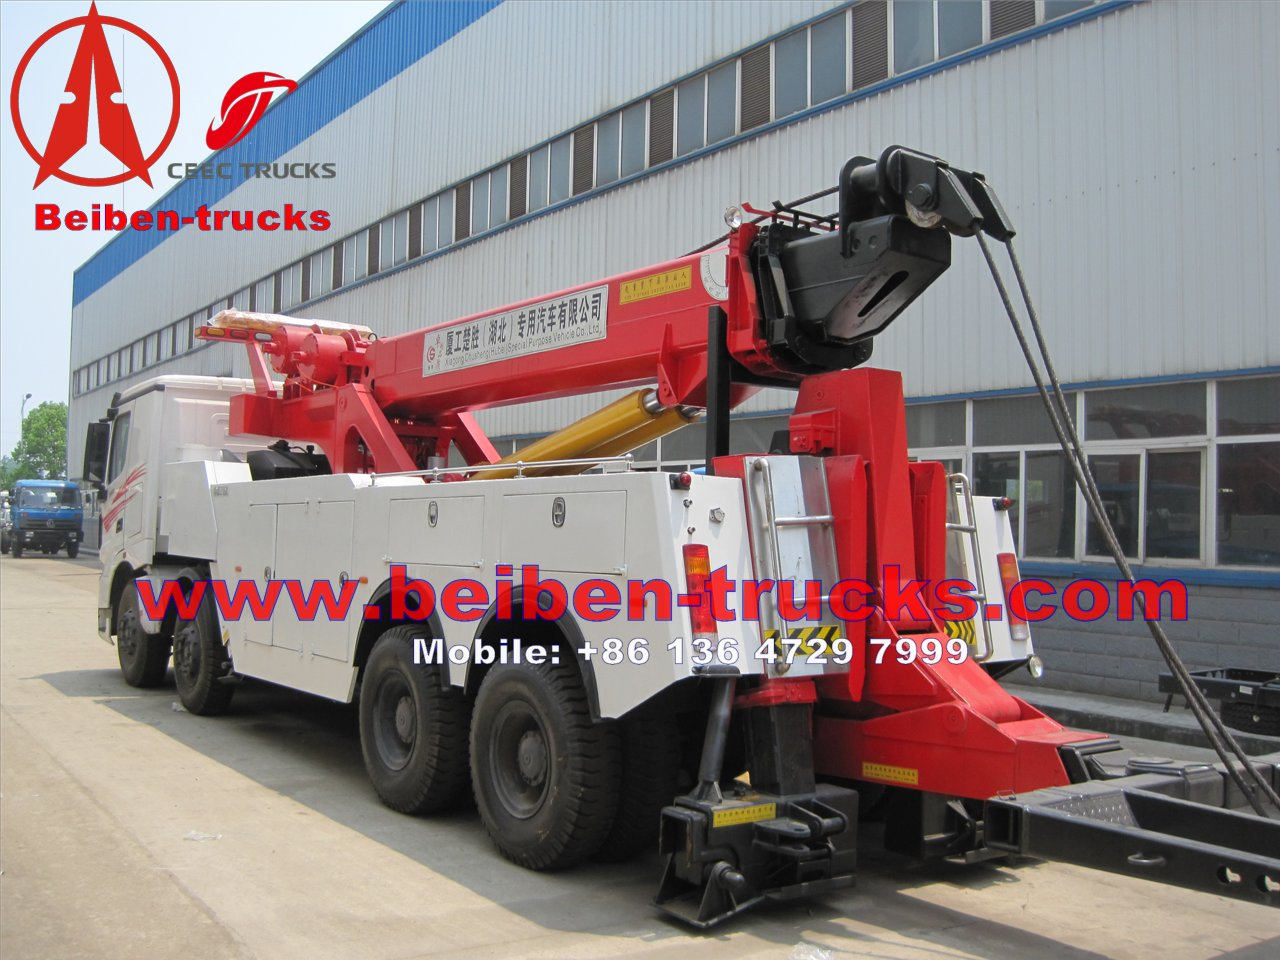 Beiben V3 cabin benz technology wrecker truck